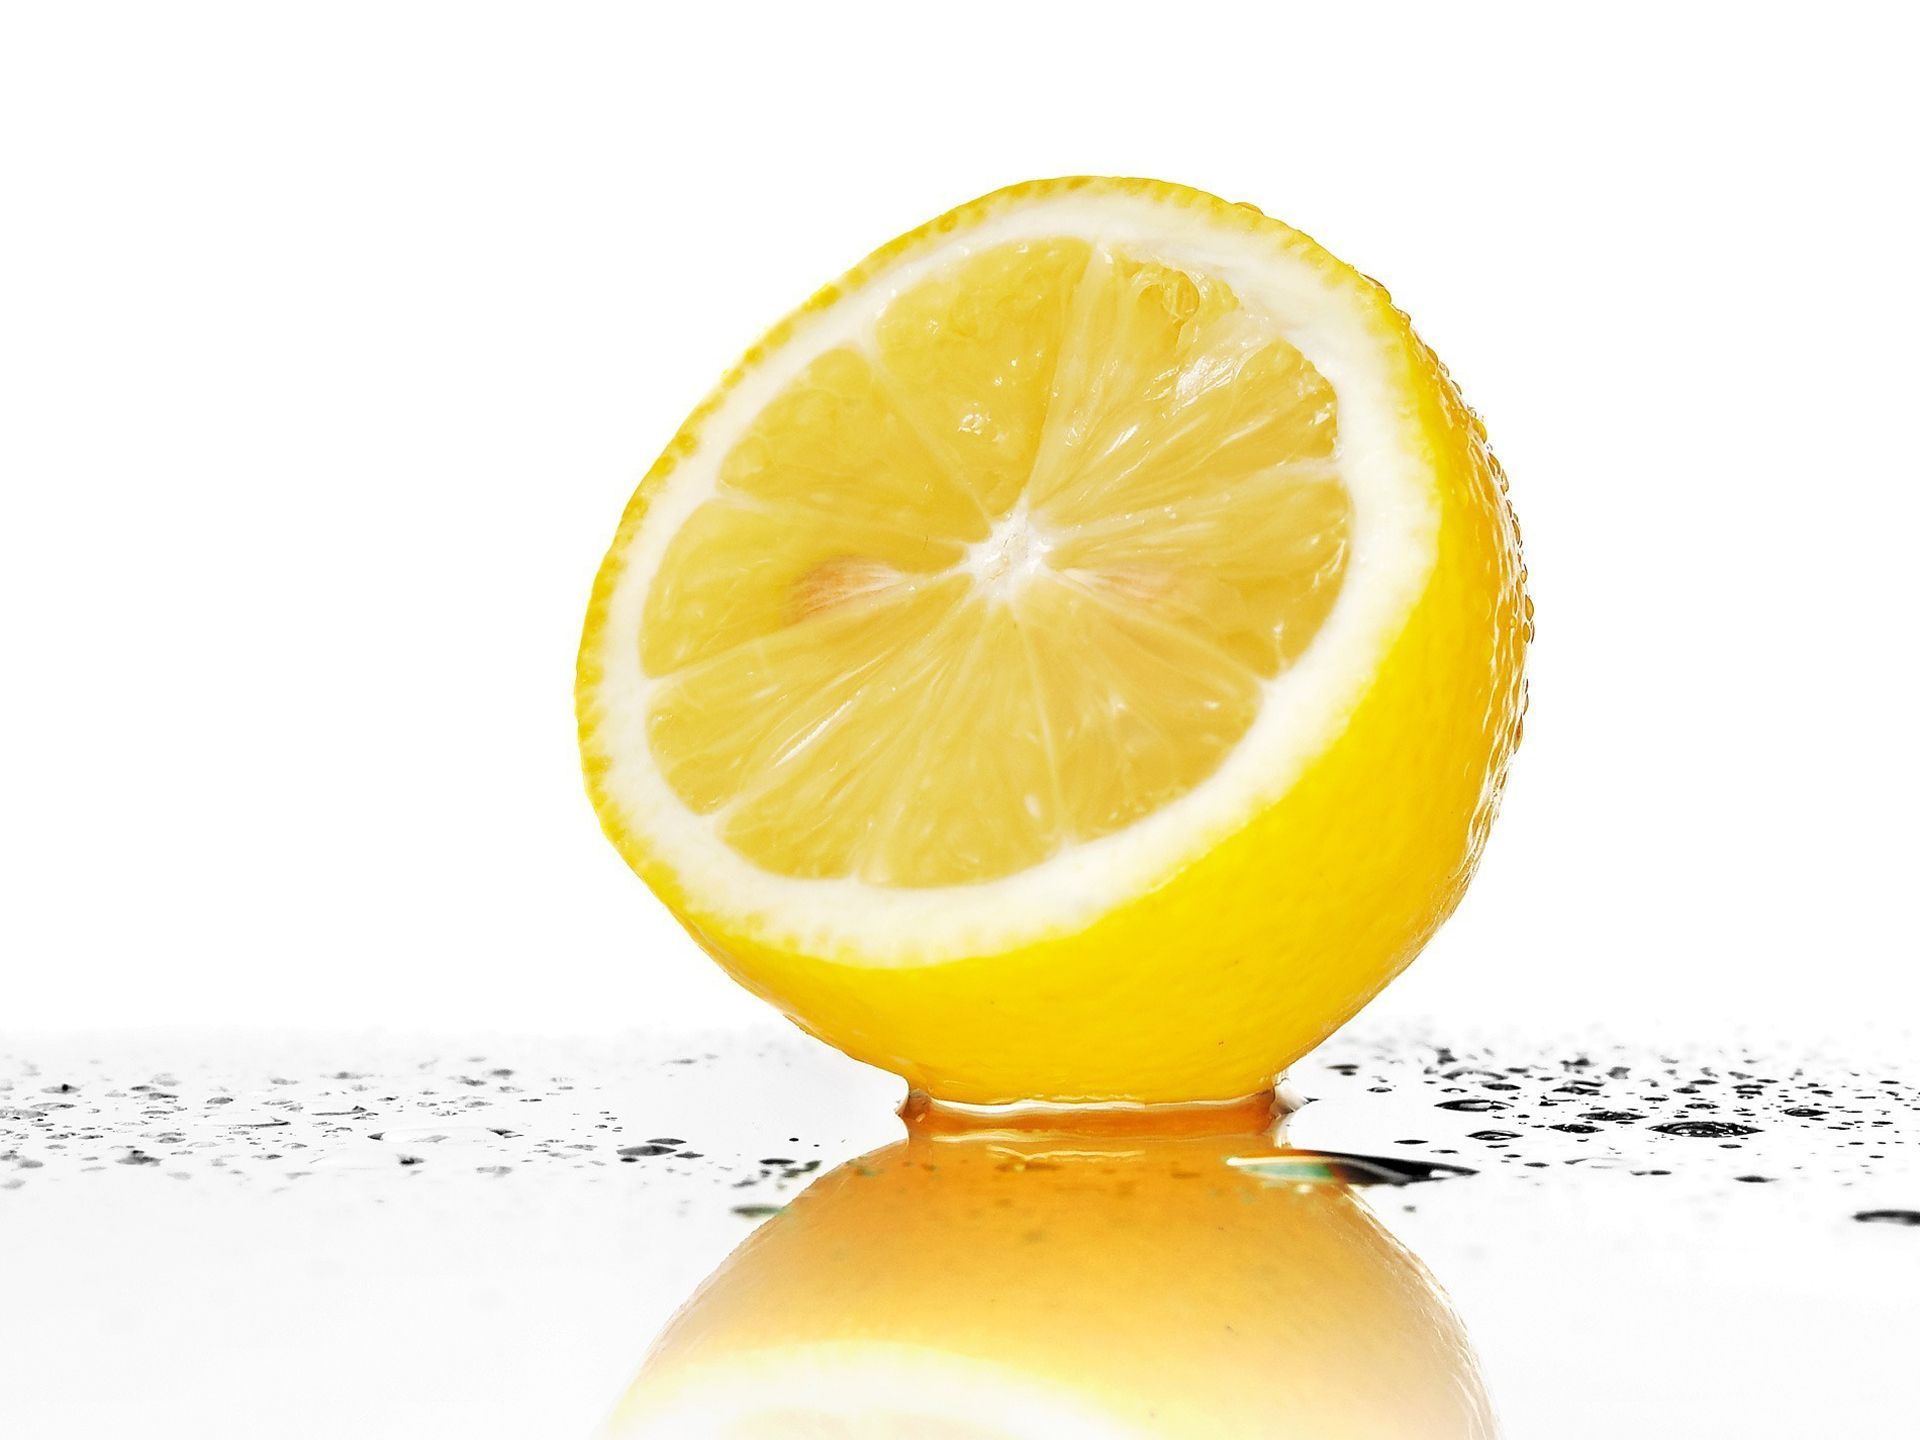 15 Great Benefits Of Lemon Juice  Naturalhealth365. Computer Network Tool Kit Commercial Cable Tv. Nuclear Cardiology Boards Payday Loans Rates. Pj Electrical Services One Year Home Warranty. Graduate Programs For Psychology. Nationally Accredited Personal Training Certifications. Small Business Loans Va Chapter 7 Bankruptcy. Best Life Insurance For Babies. Law Enforcement Communications